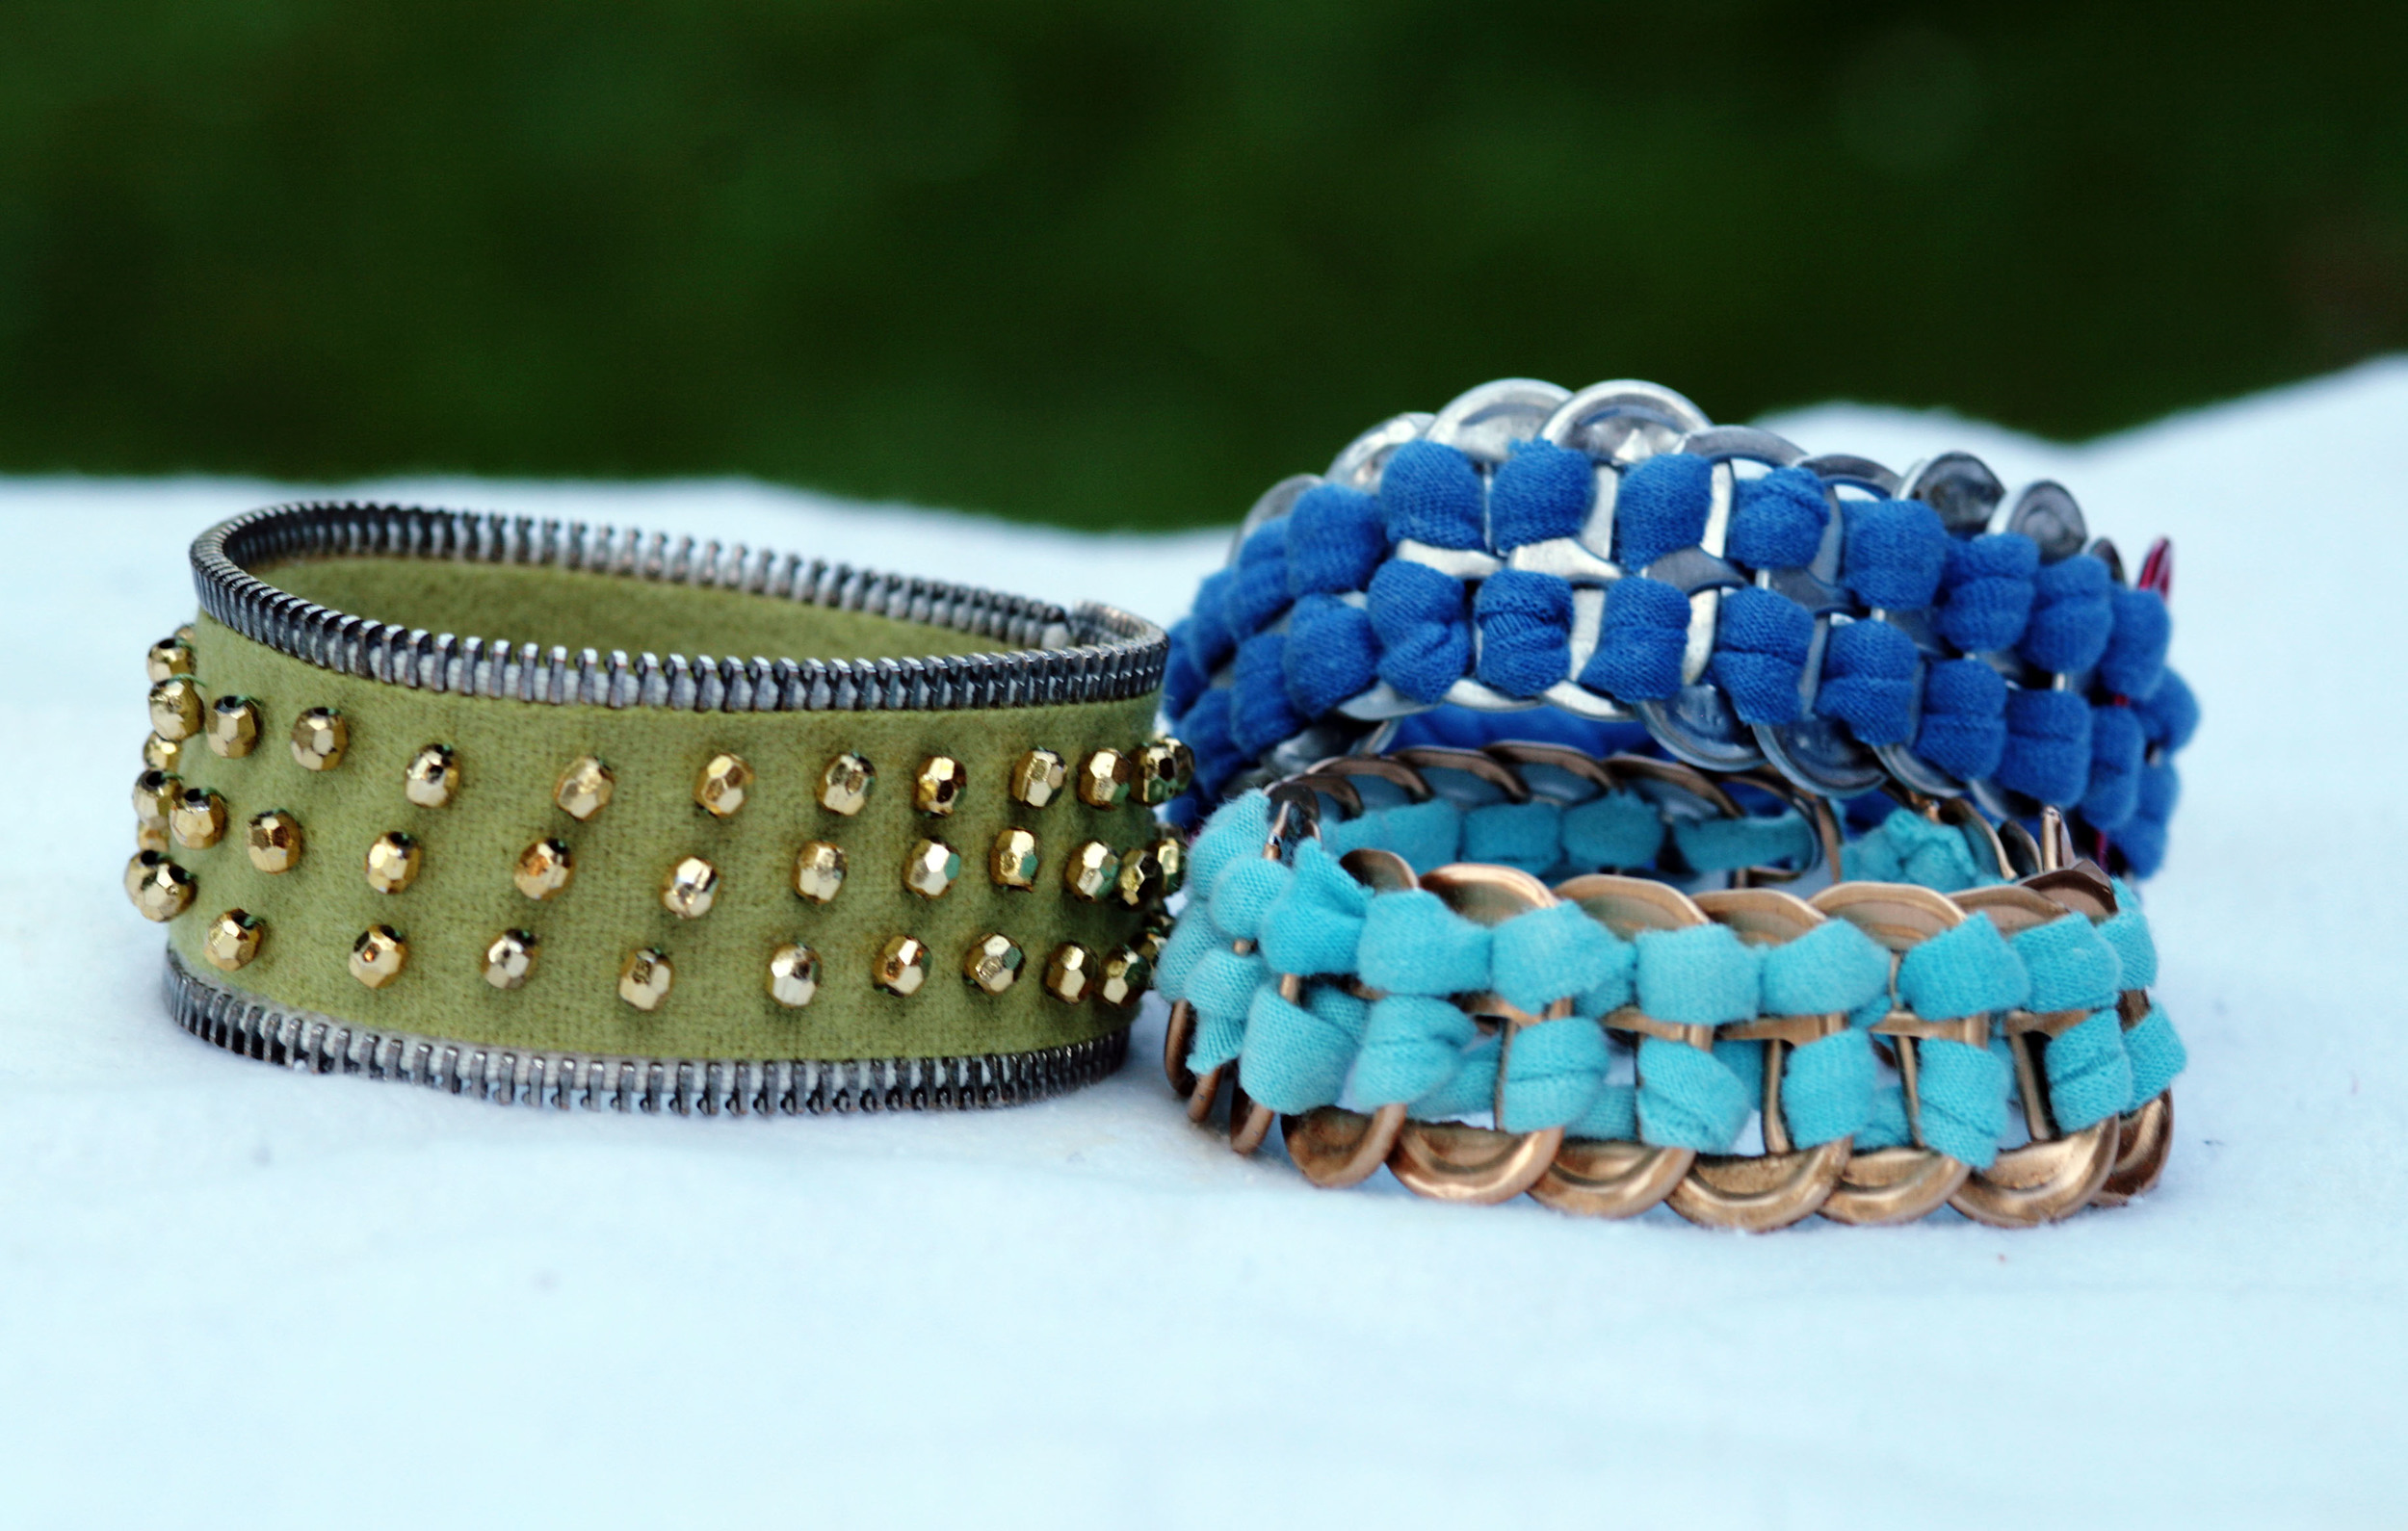 Bracelets made of a zipper and soda tabs.